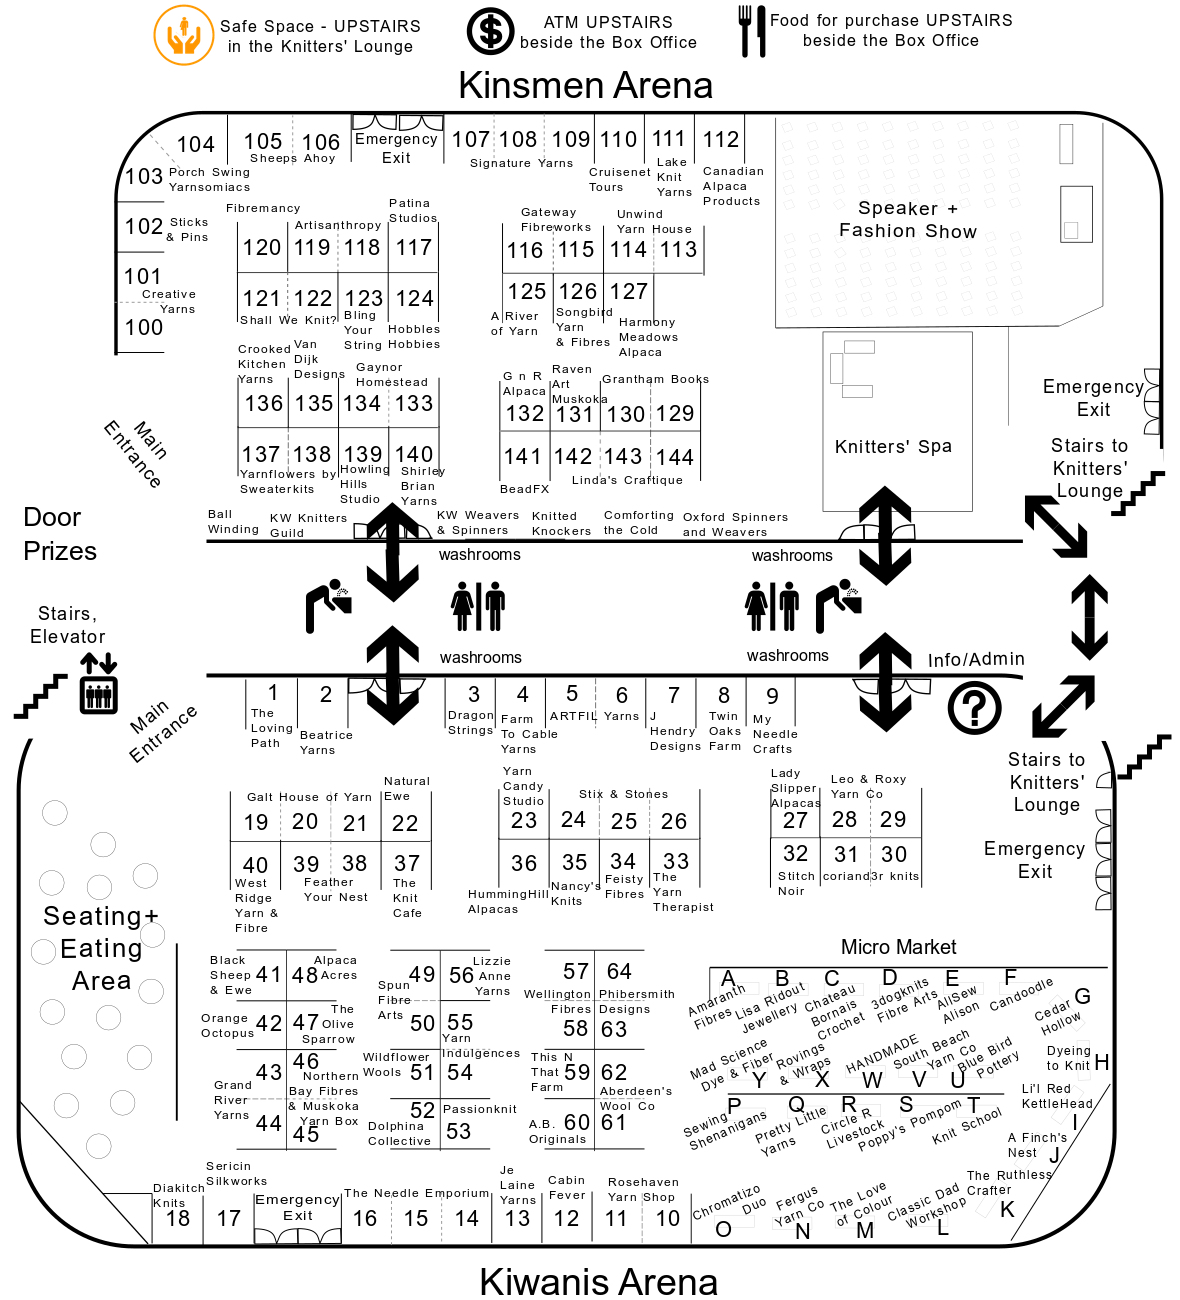 2019 Knitters' Fair Layout Map